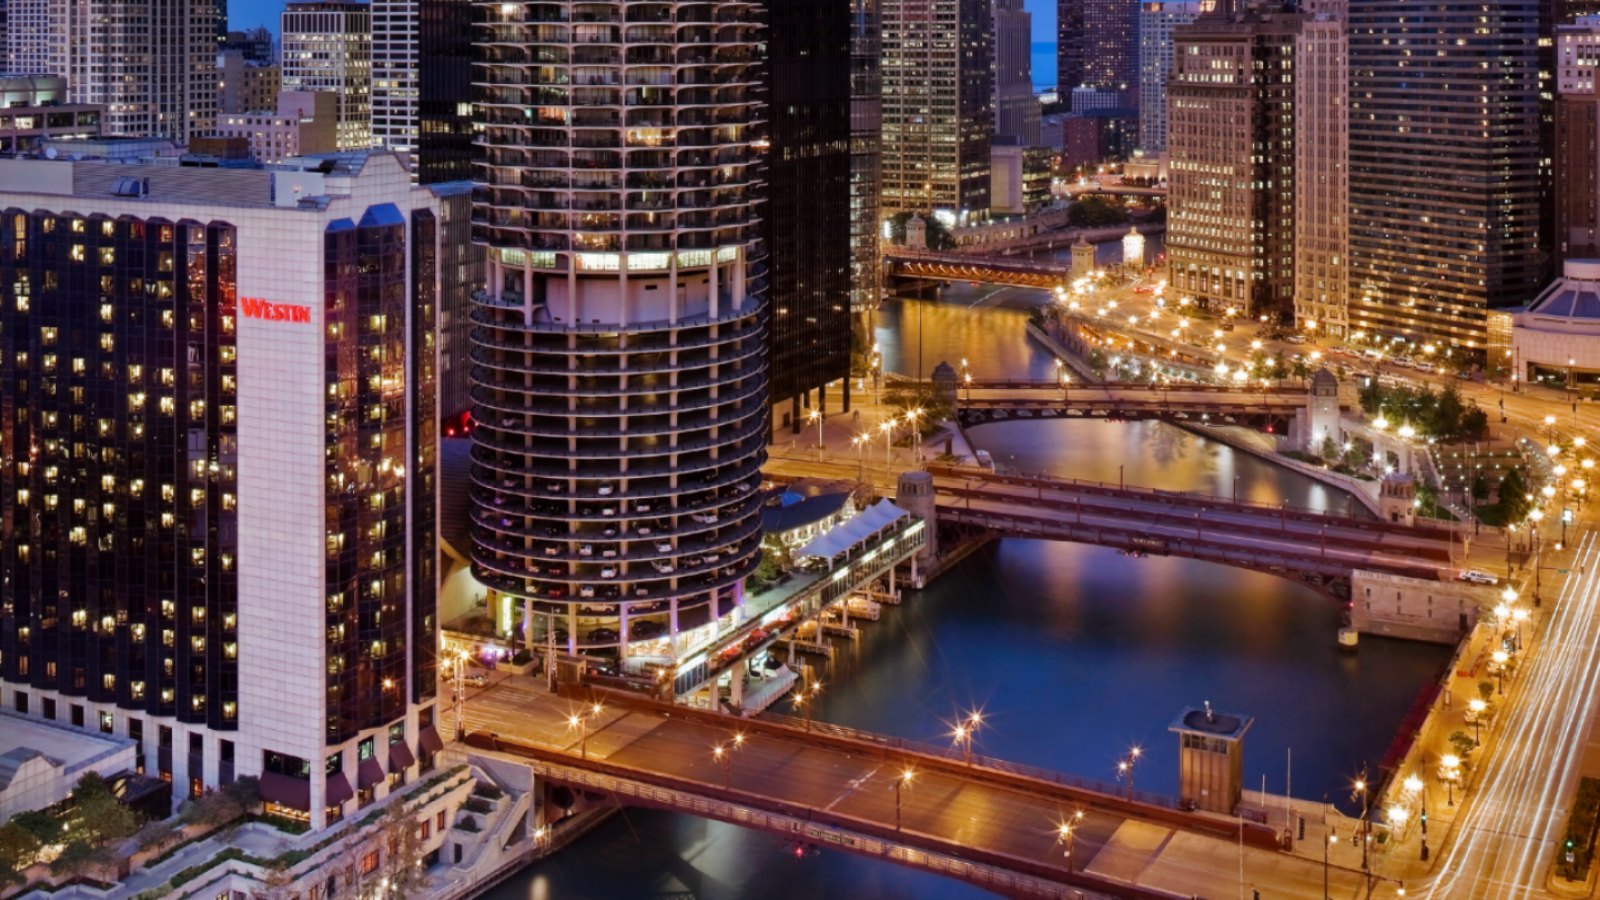 Hyatt place river north best place 2017 for Best hotel location in chicago